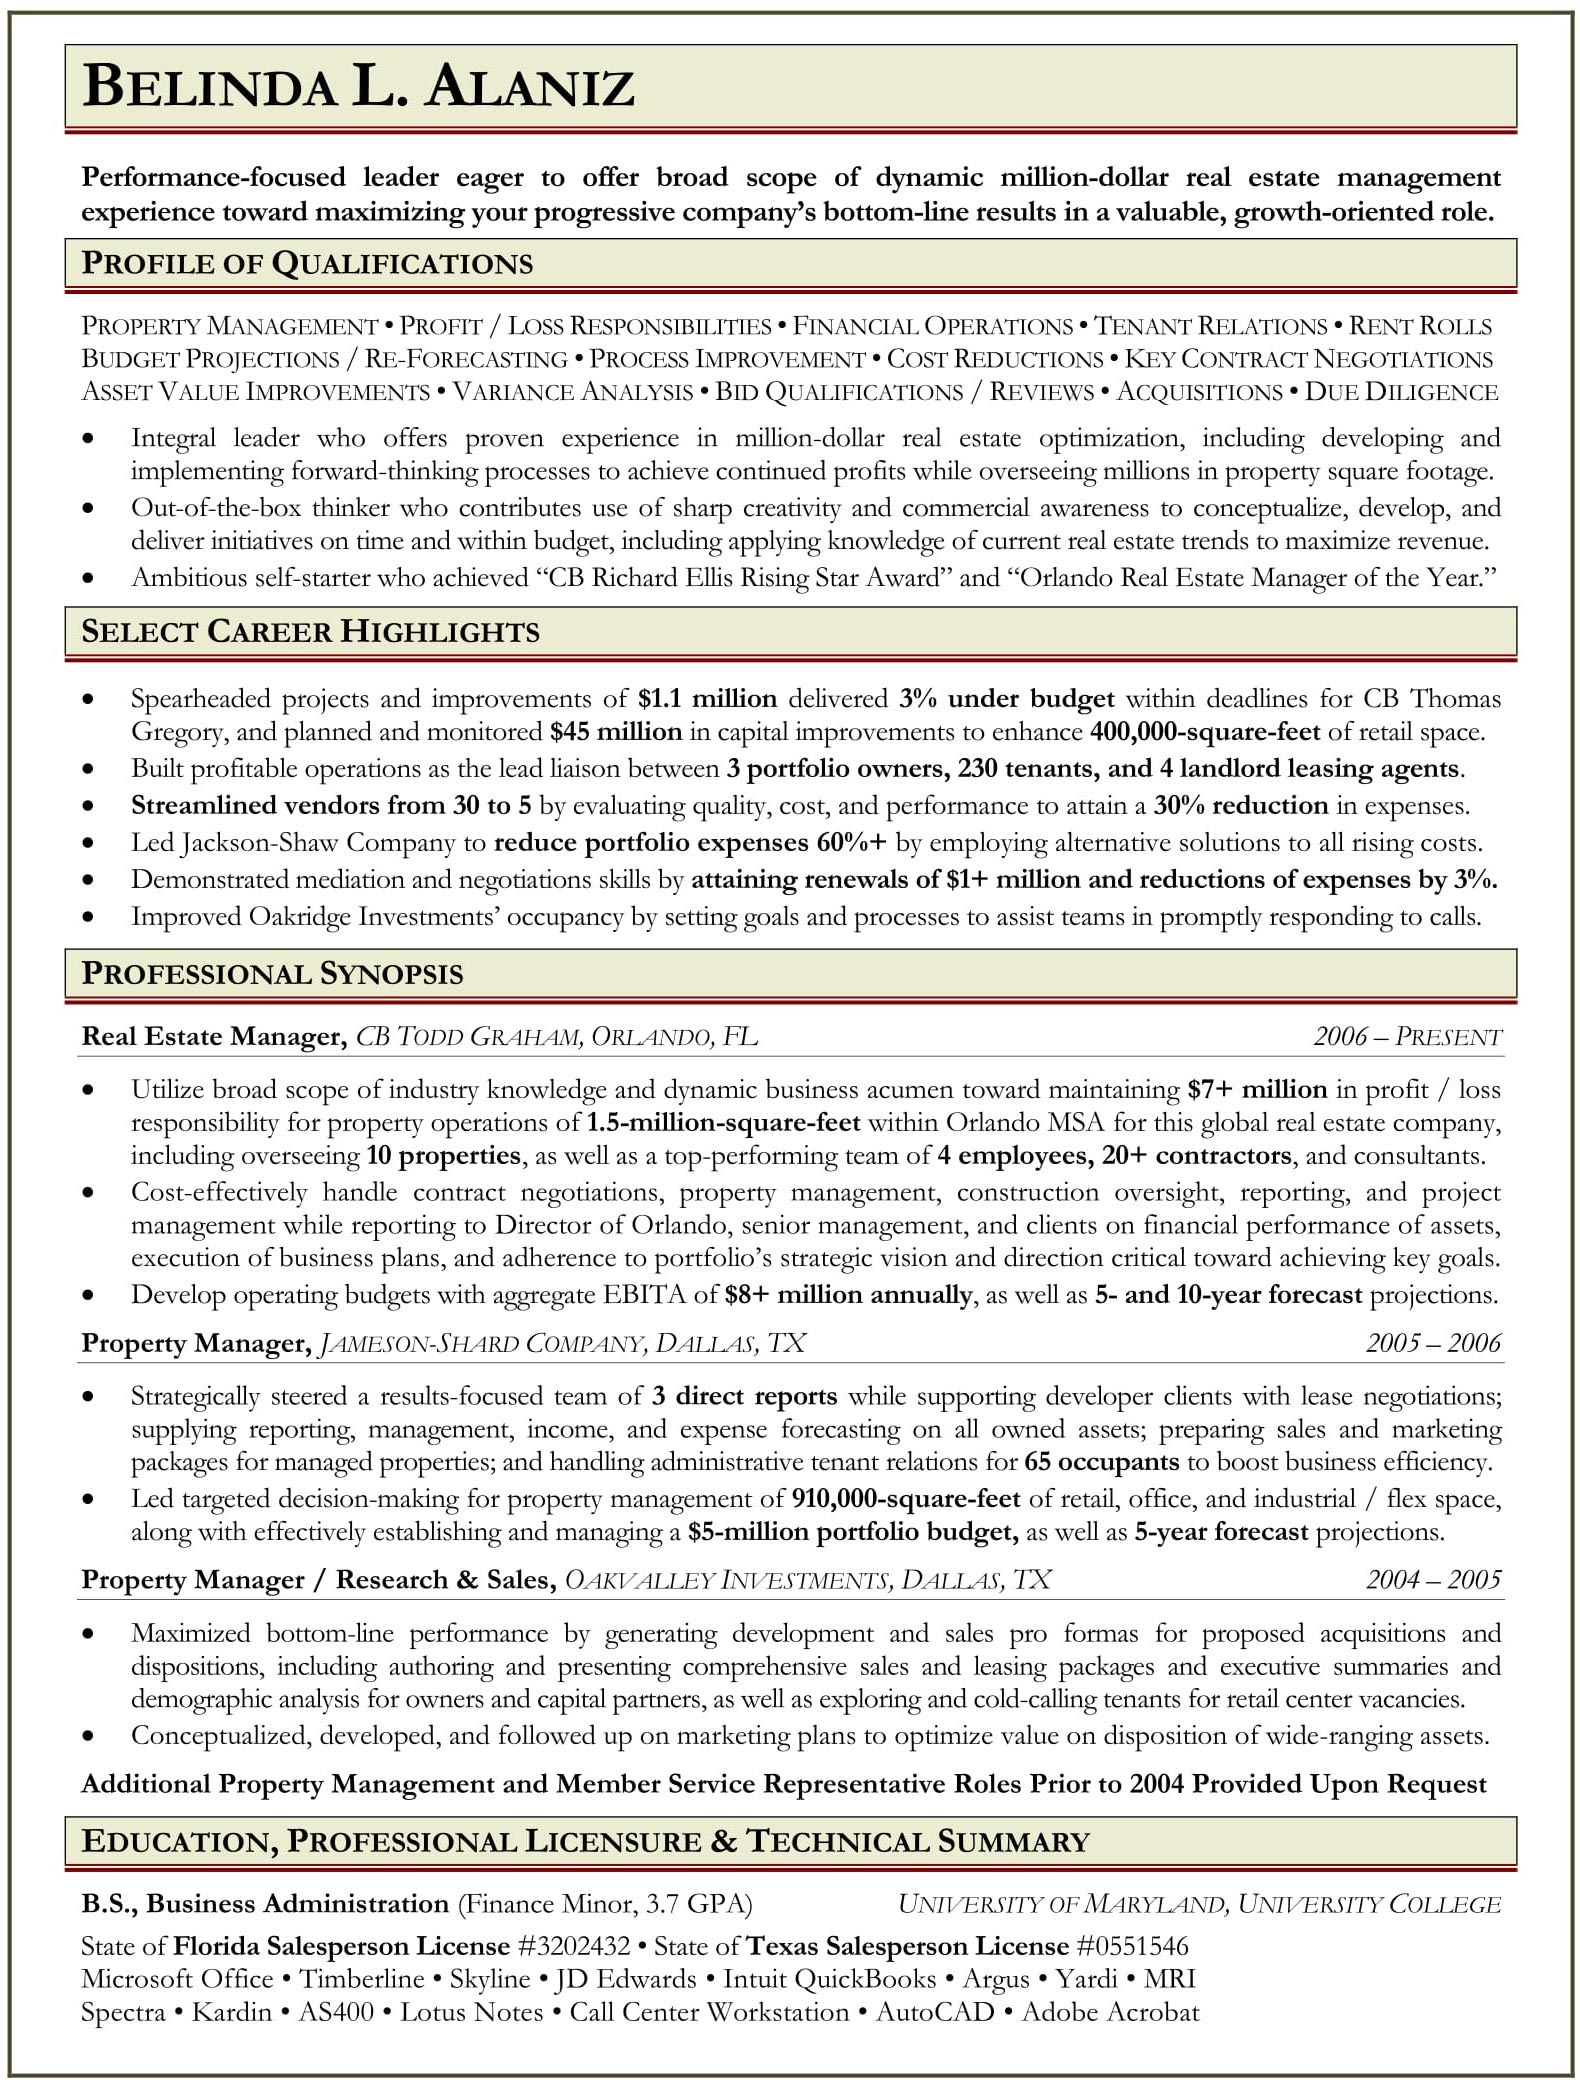 sample resume for property manager ranked 1